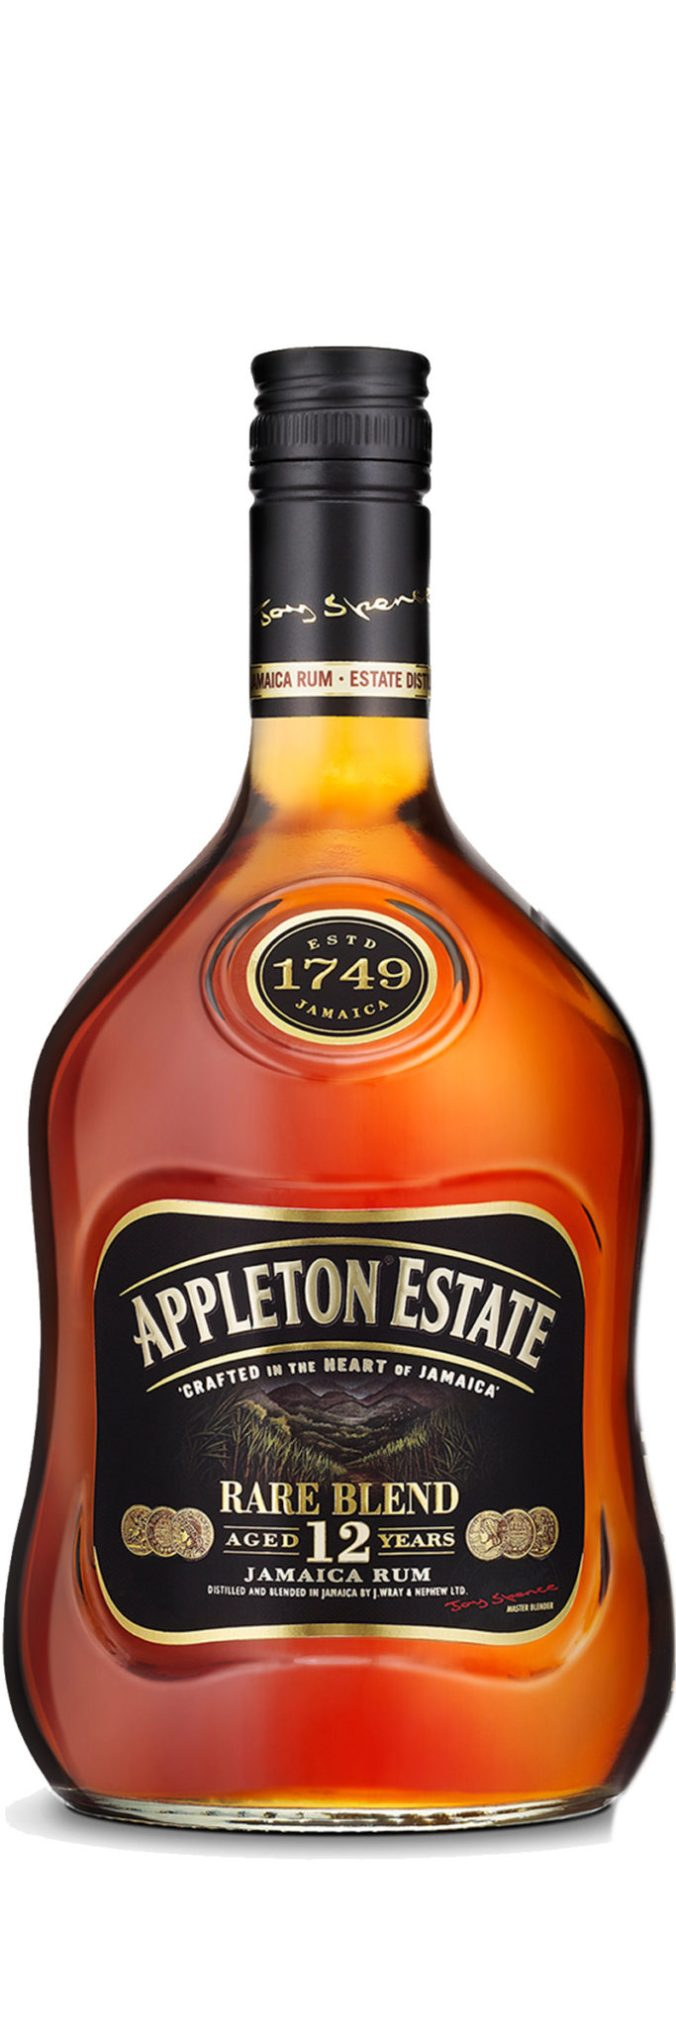 Appleton Estate Rare Blend (12 Extra) Image